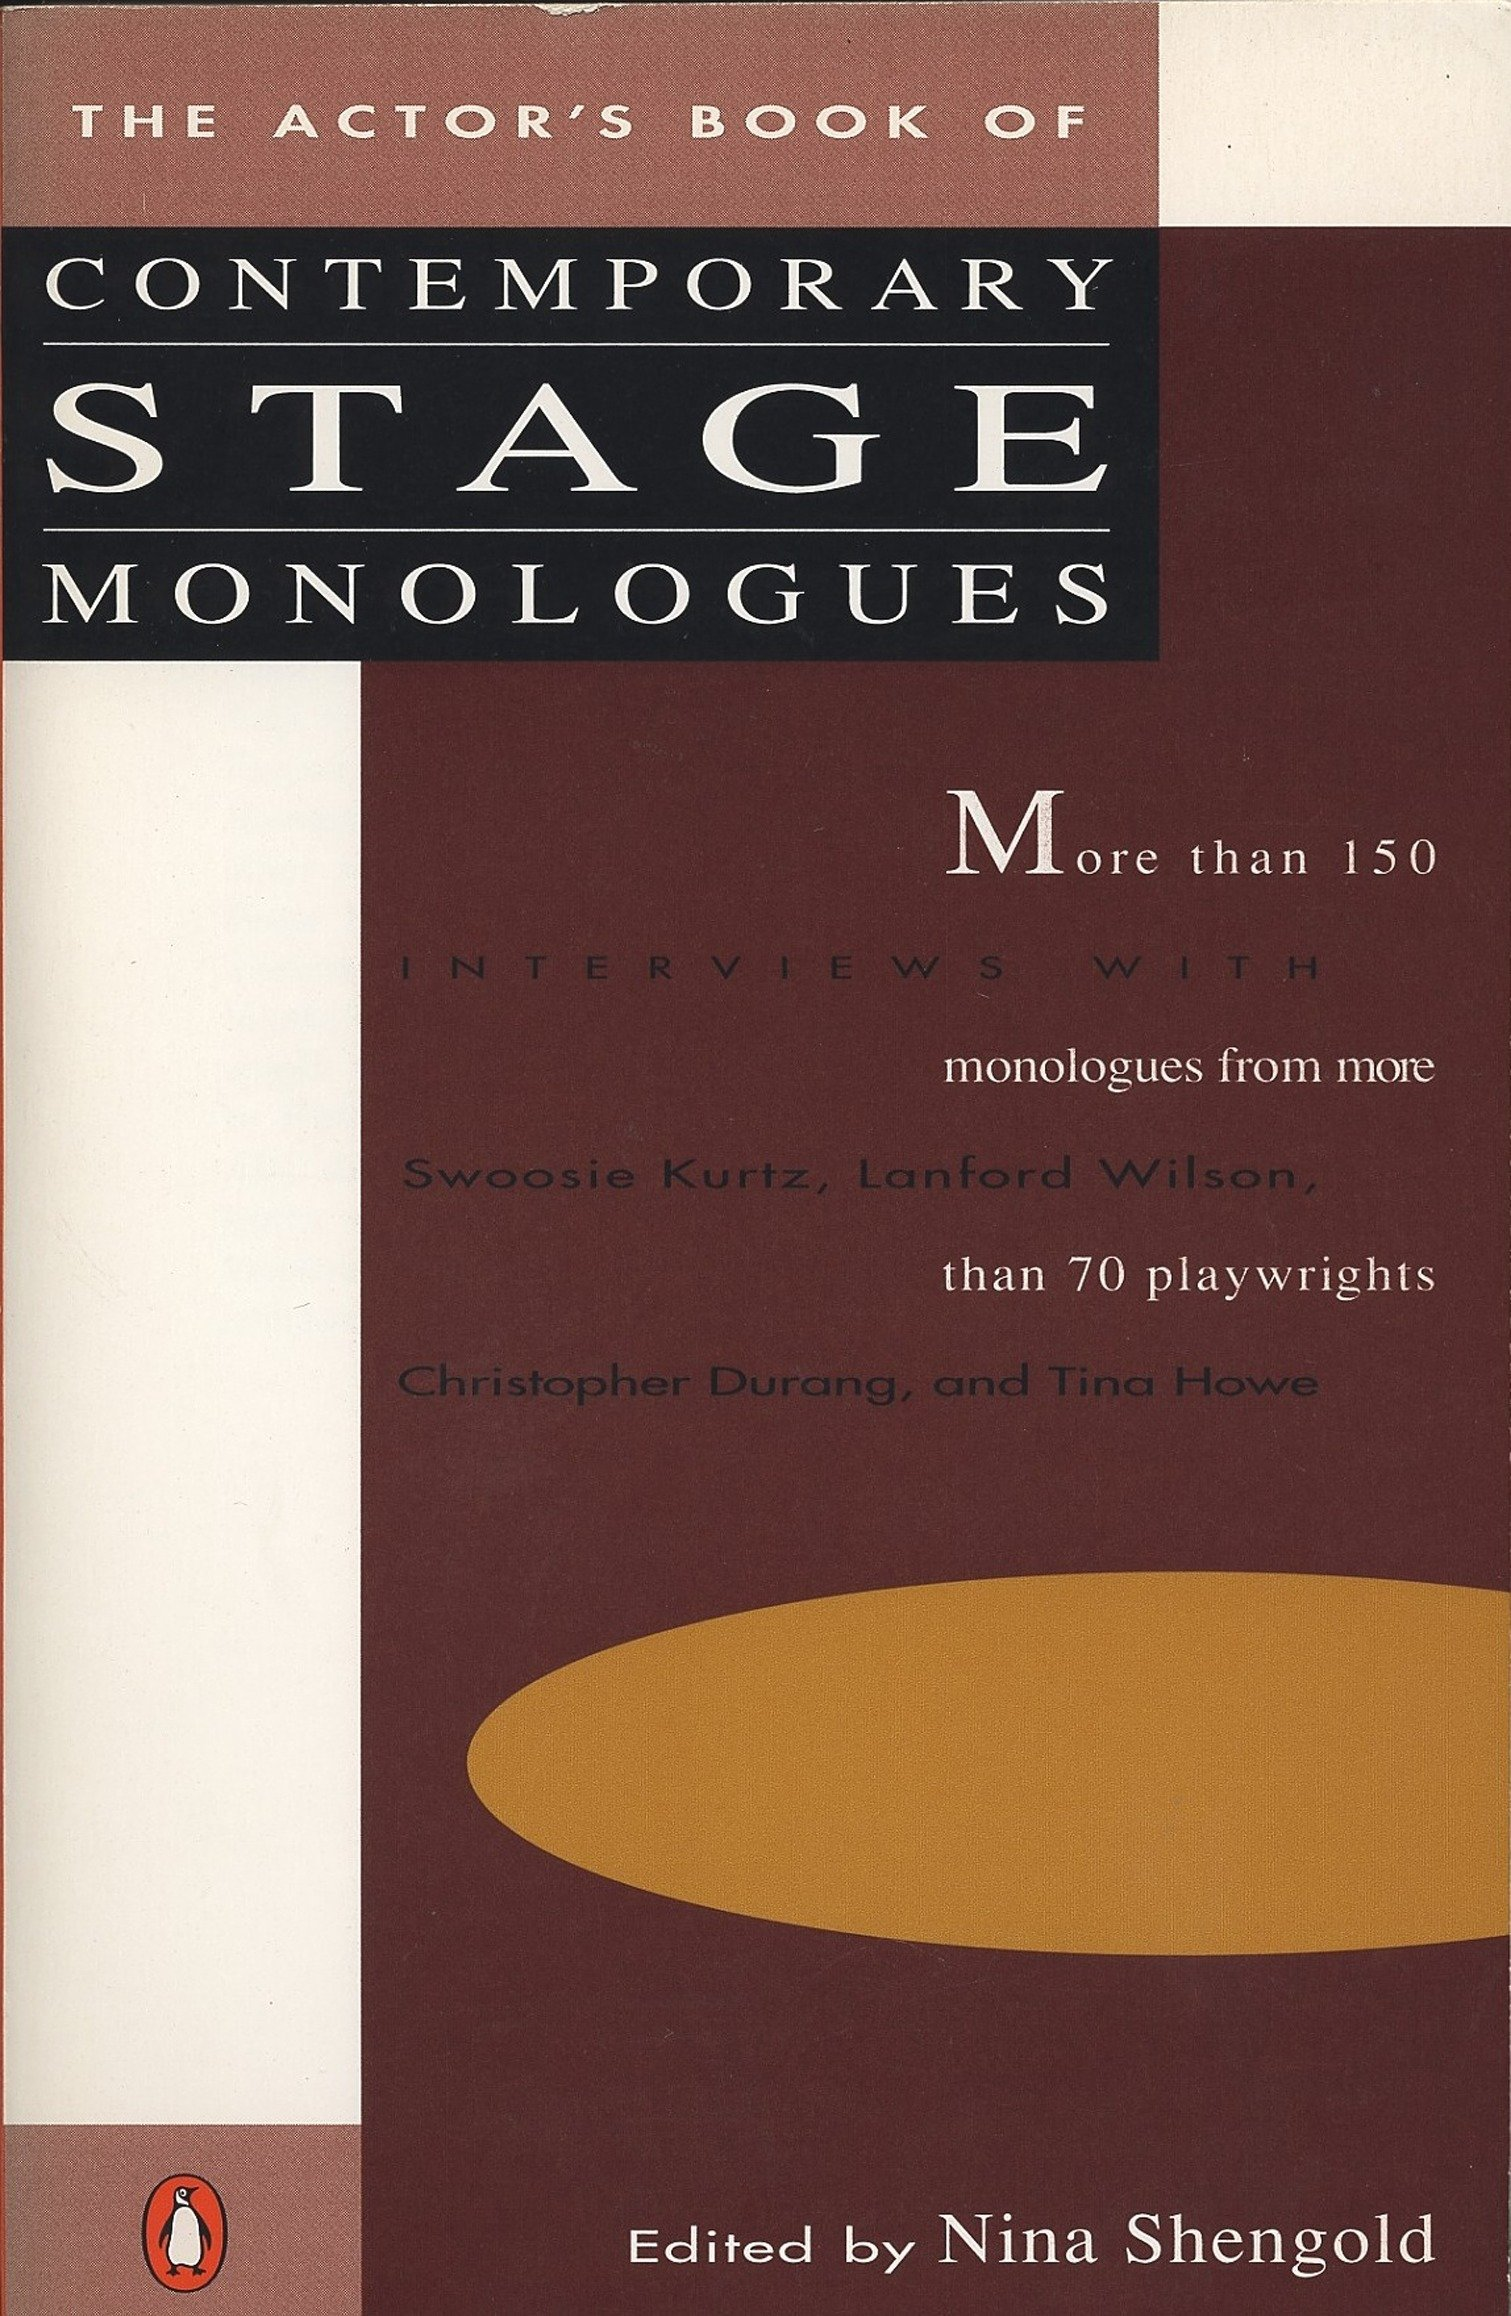 The Actor's Book of Contemporary Stage Monologues: More Than 150 Monologues  from More Than 70 Playwrights: Nina Shengold: 9780140096491: Amazon.com:  Books